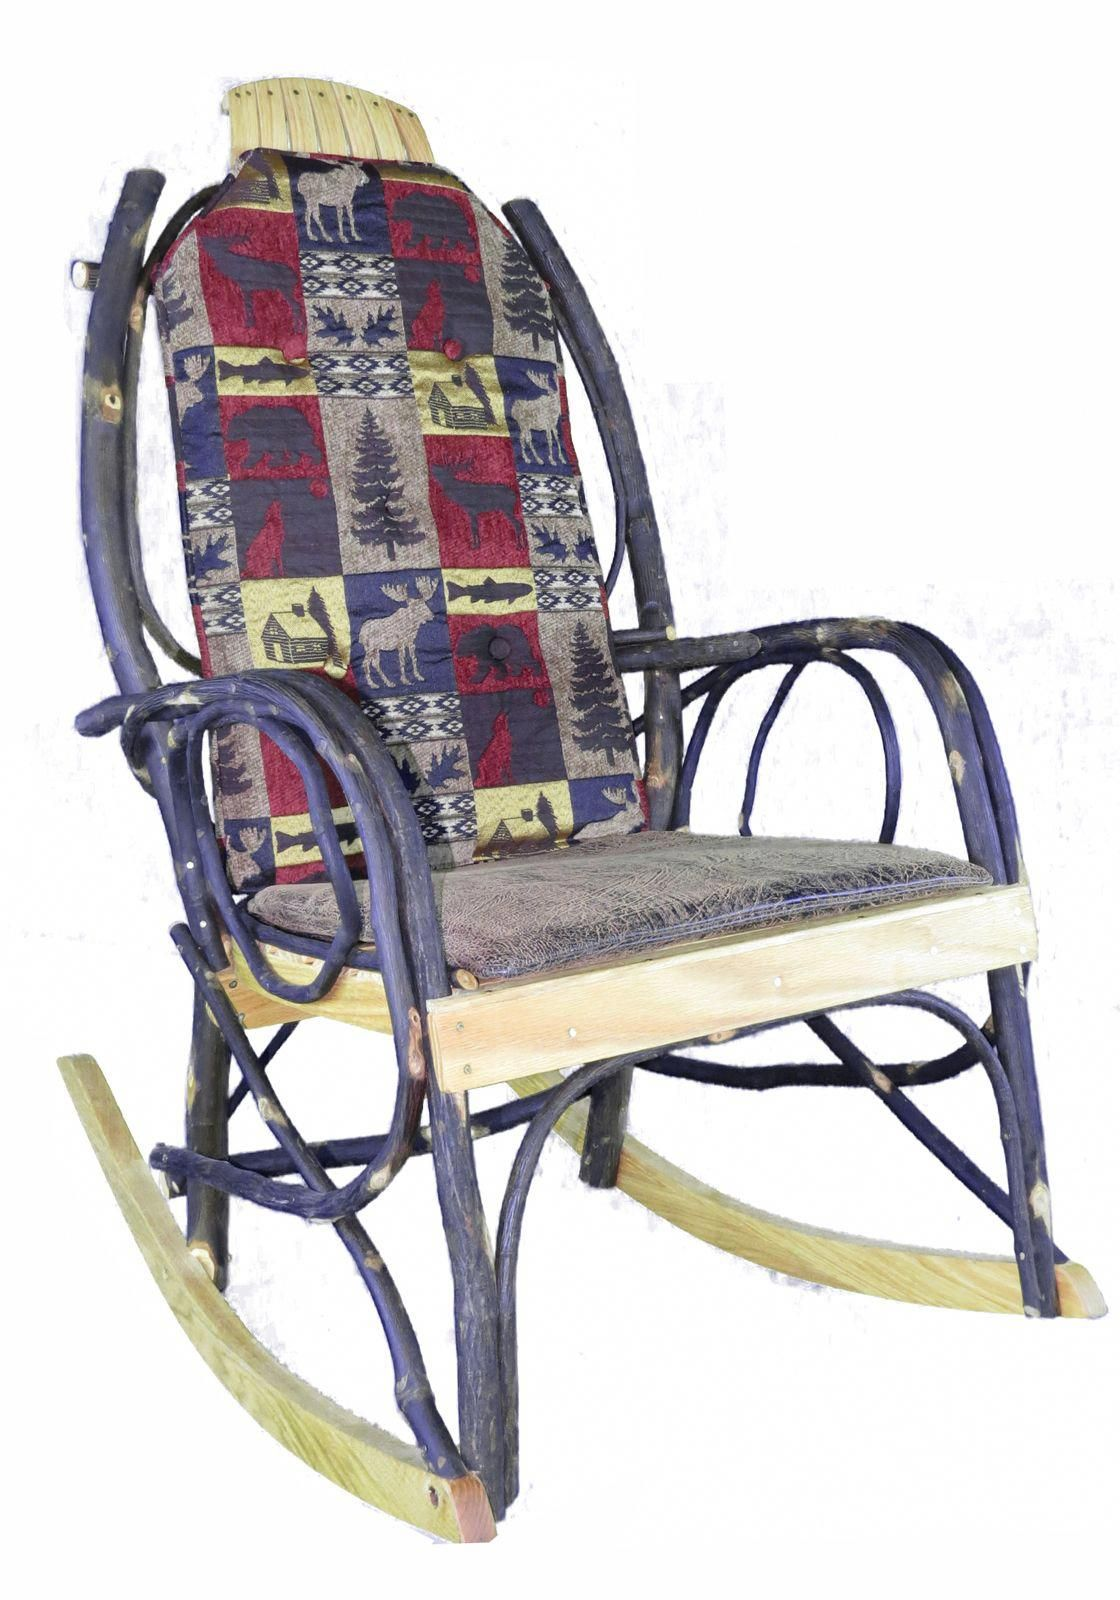 Restaurant Chairs For Sale Rocking chair, Bentwood